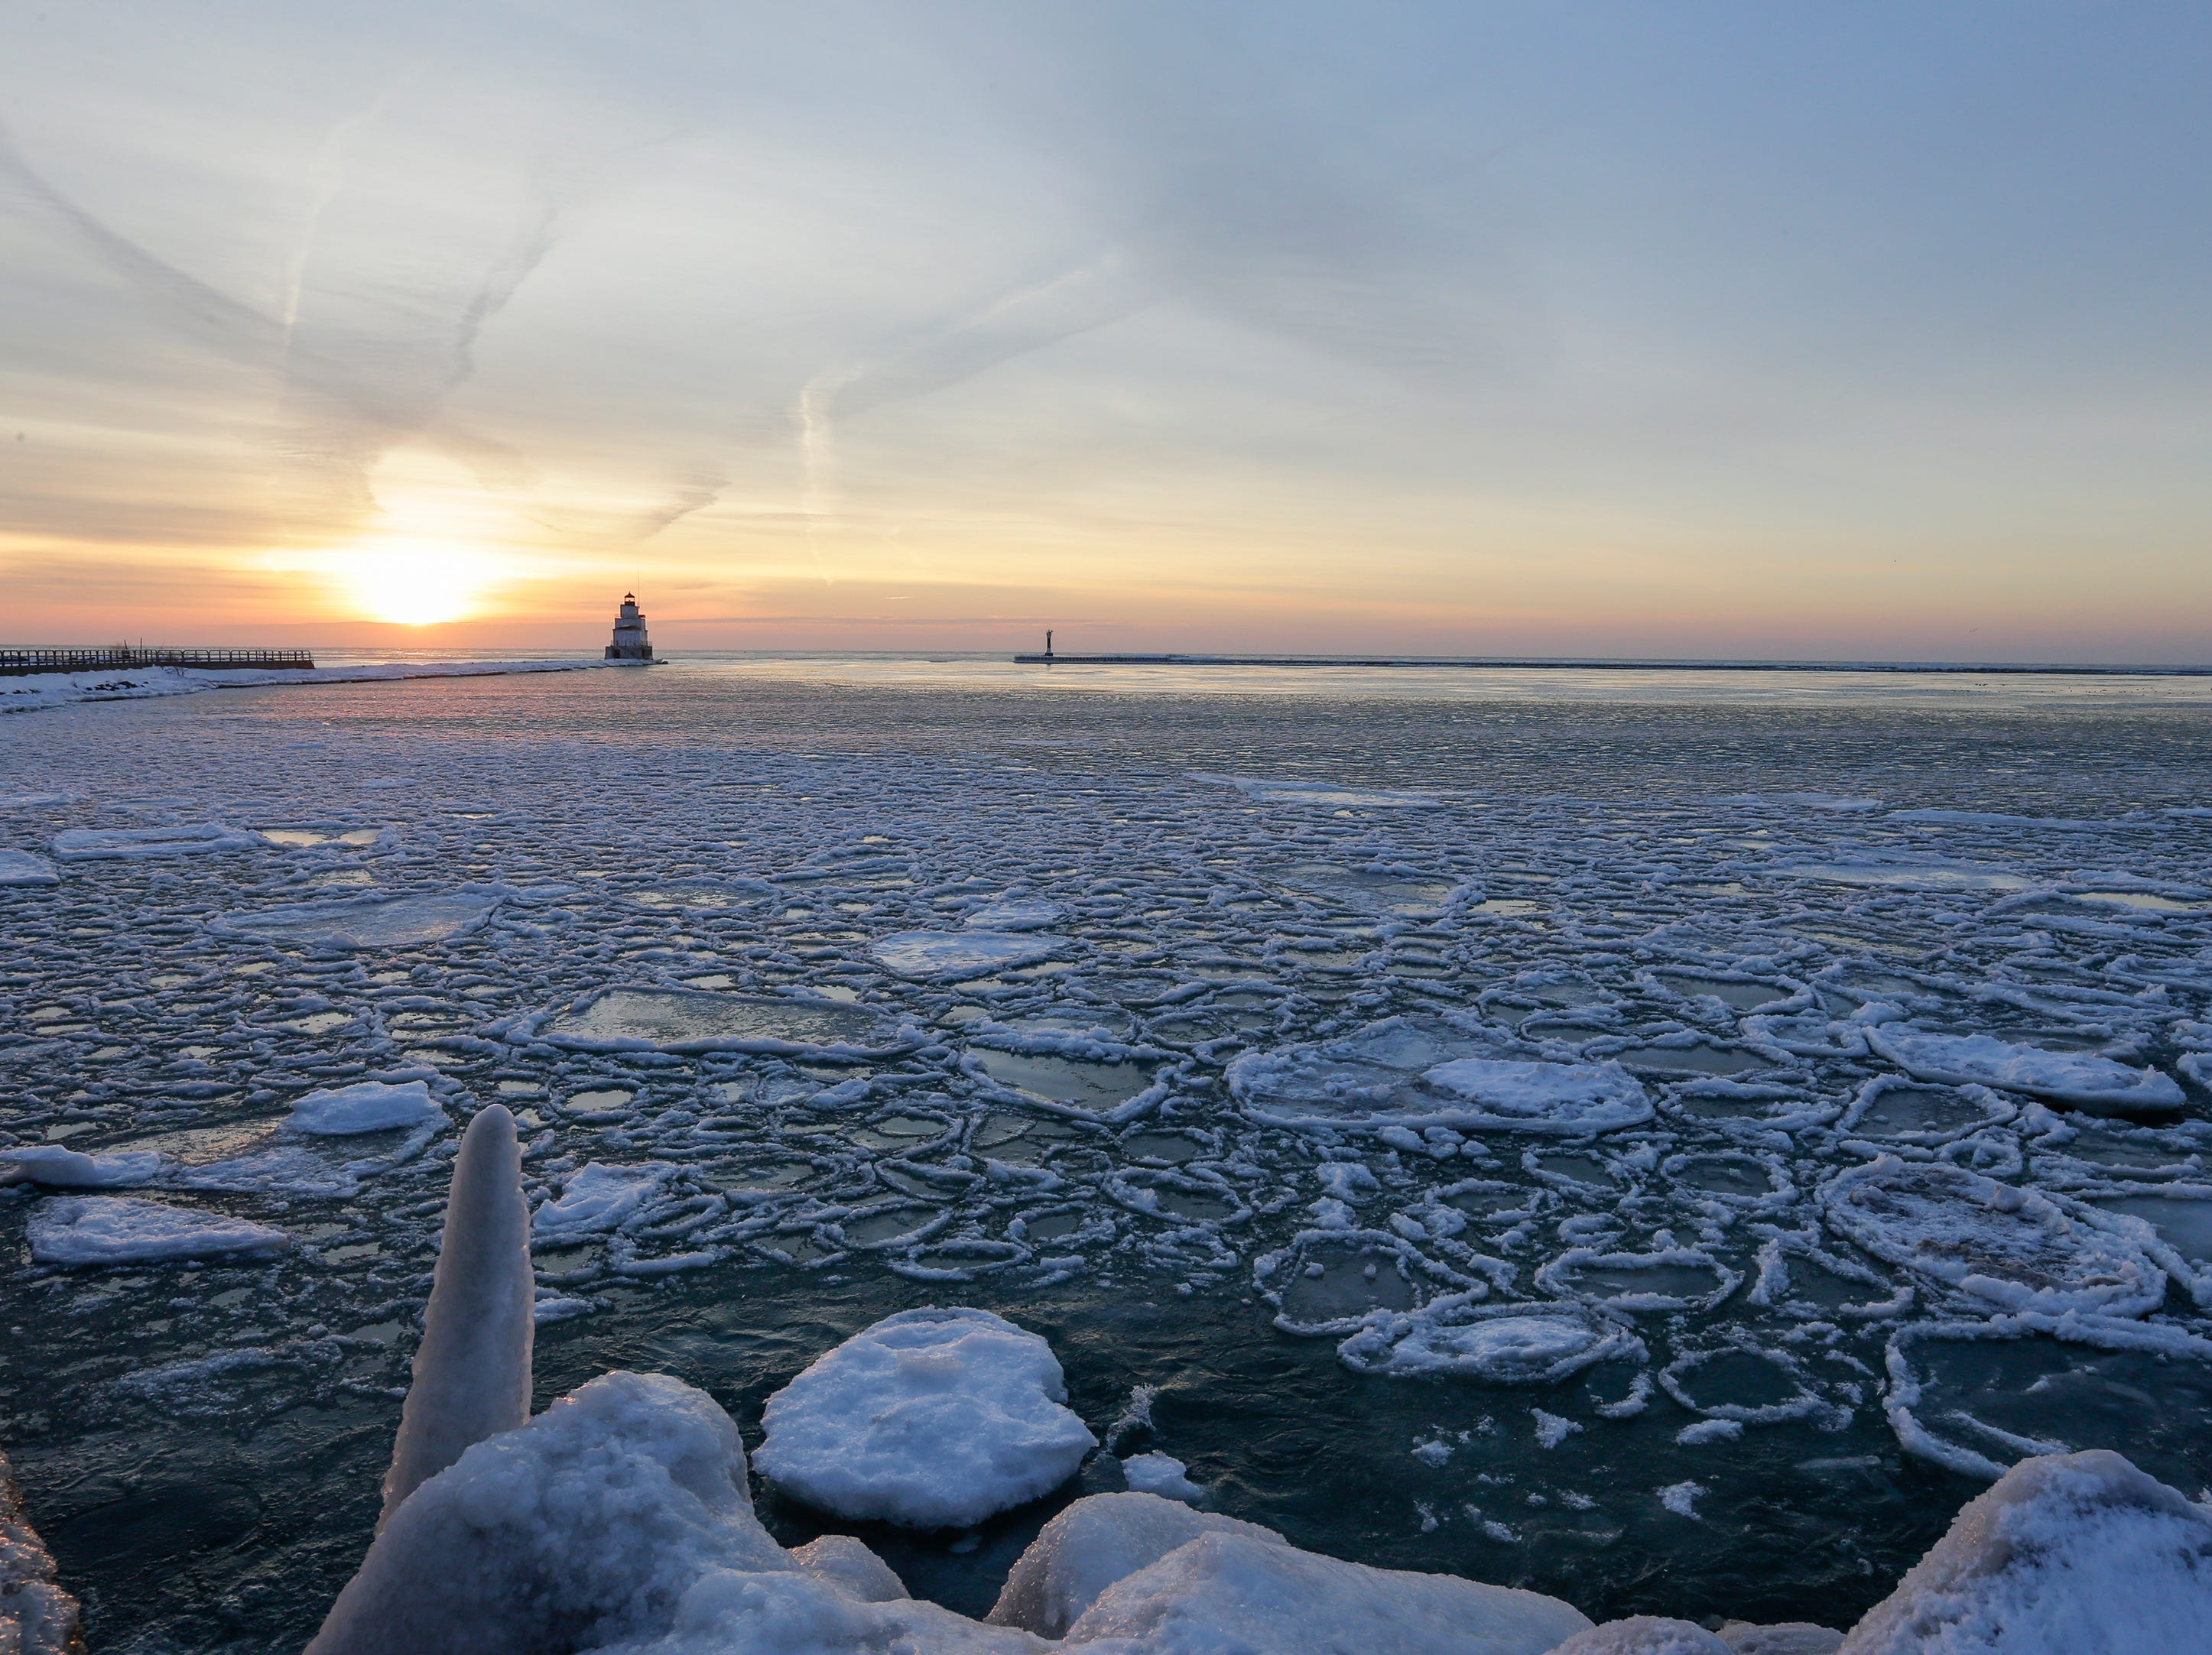 Pancake ice sits on top of Lake Michigan as the sun rises Friday, Jan. 19, 2018, in Manitowoc, Wis. Josh Clark/USA TODAY NETWORK-Wisconsin